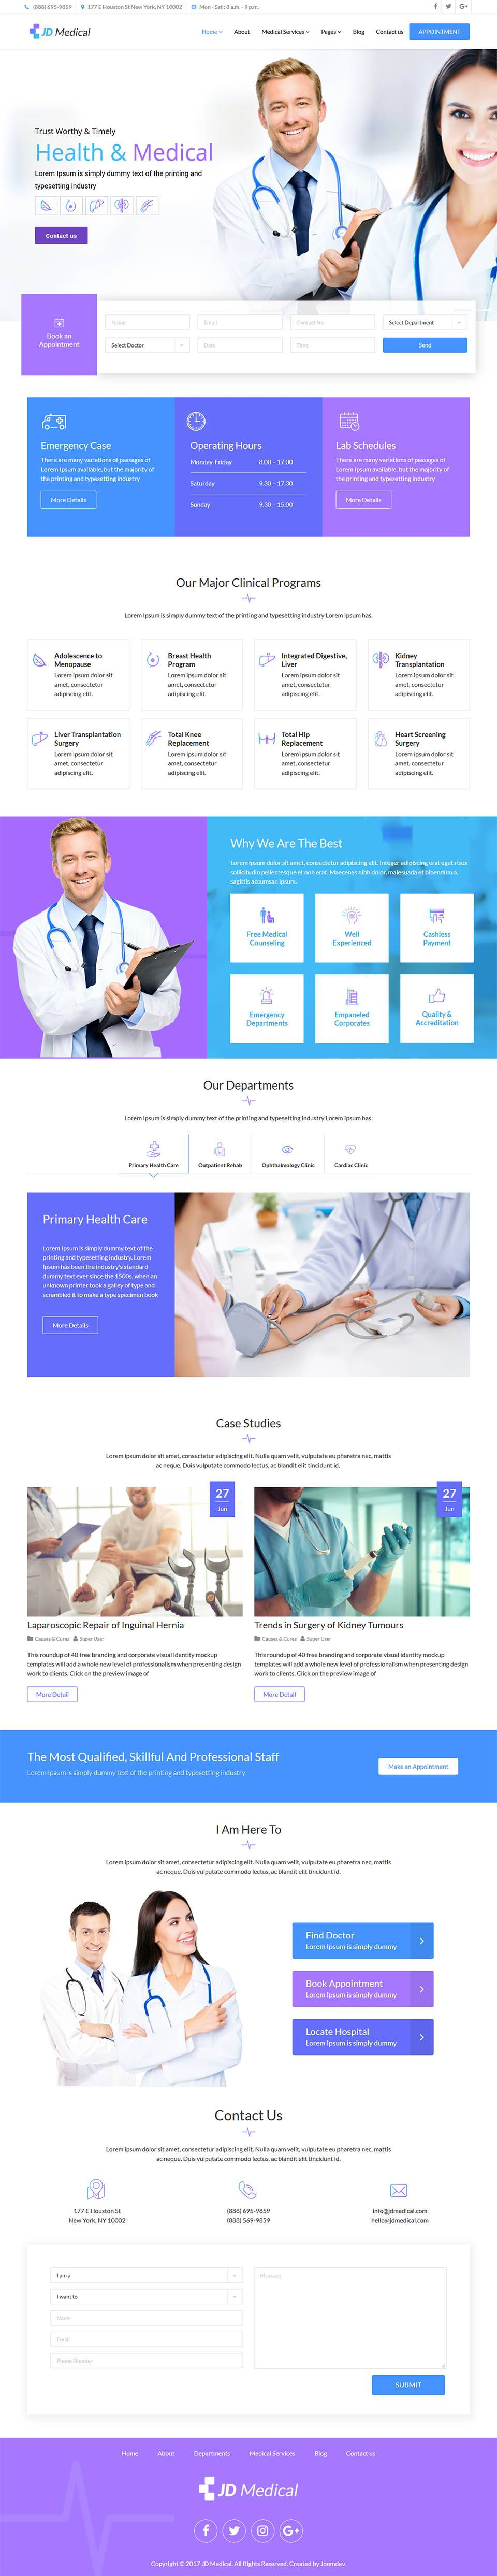 Jd Medical Joomla Template